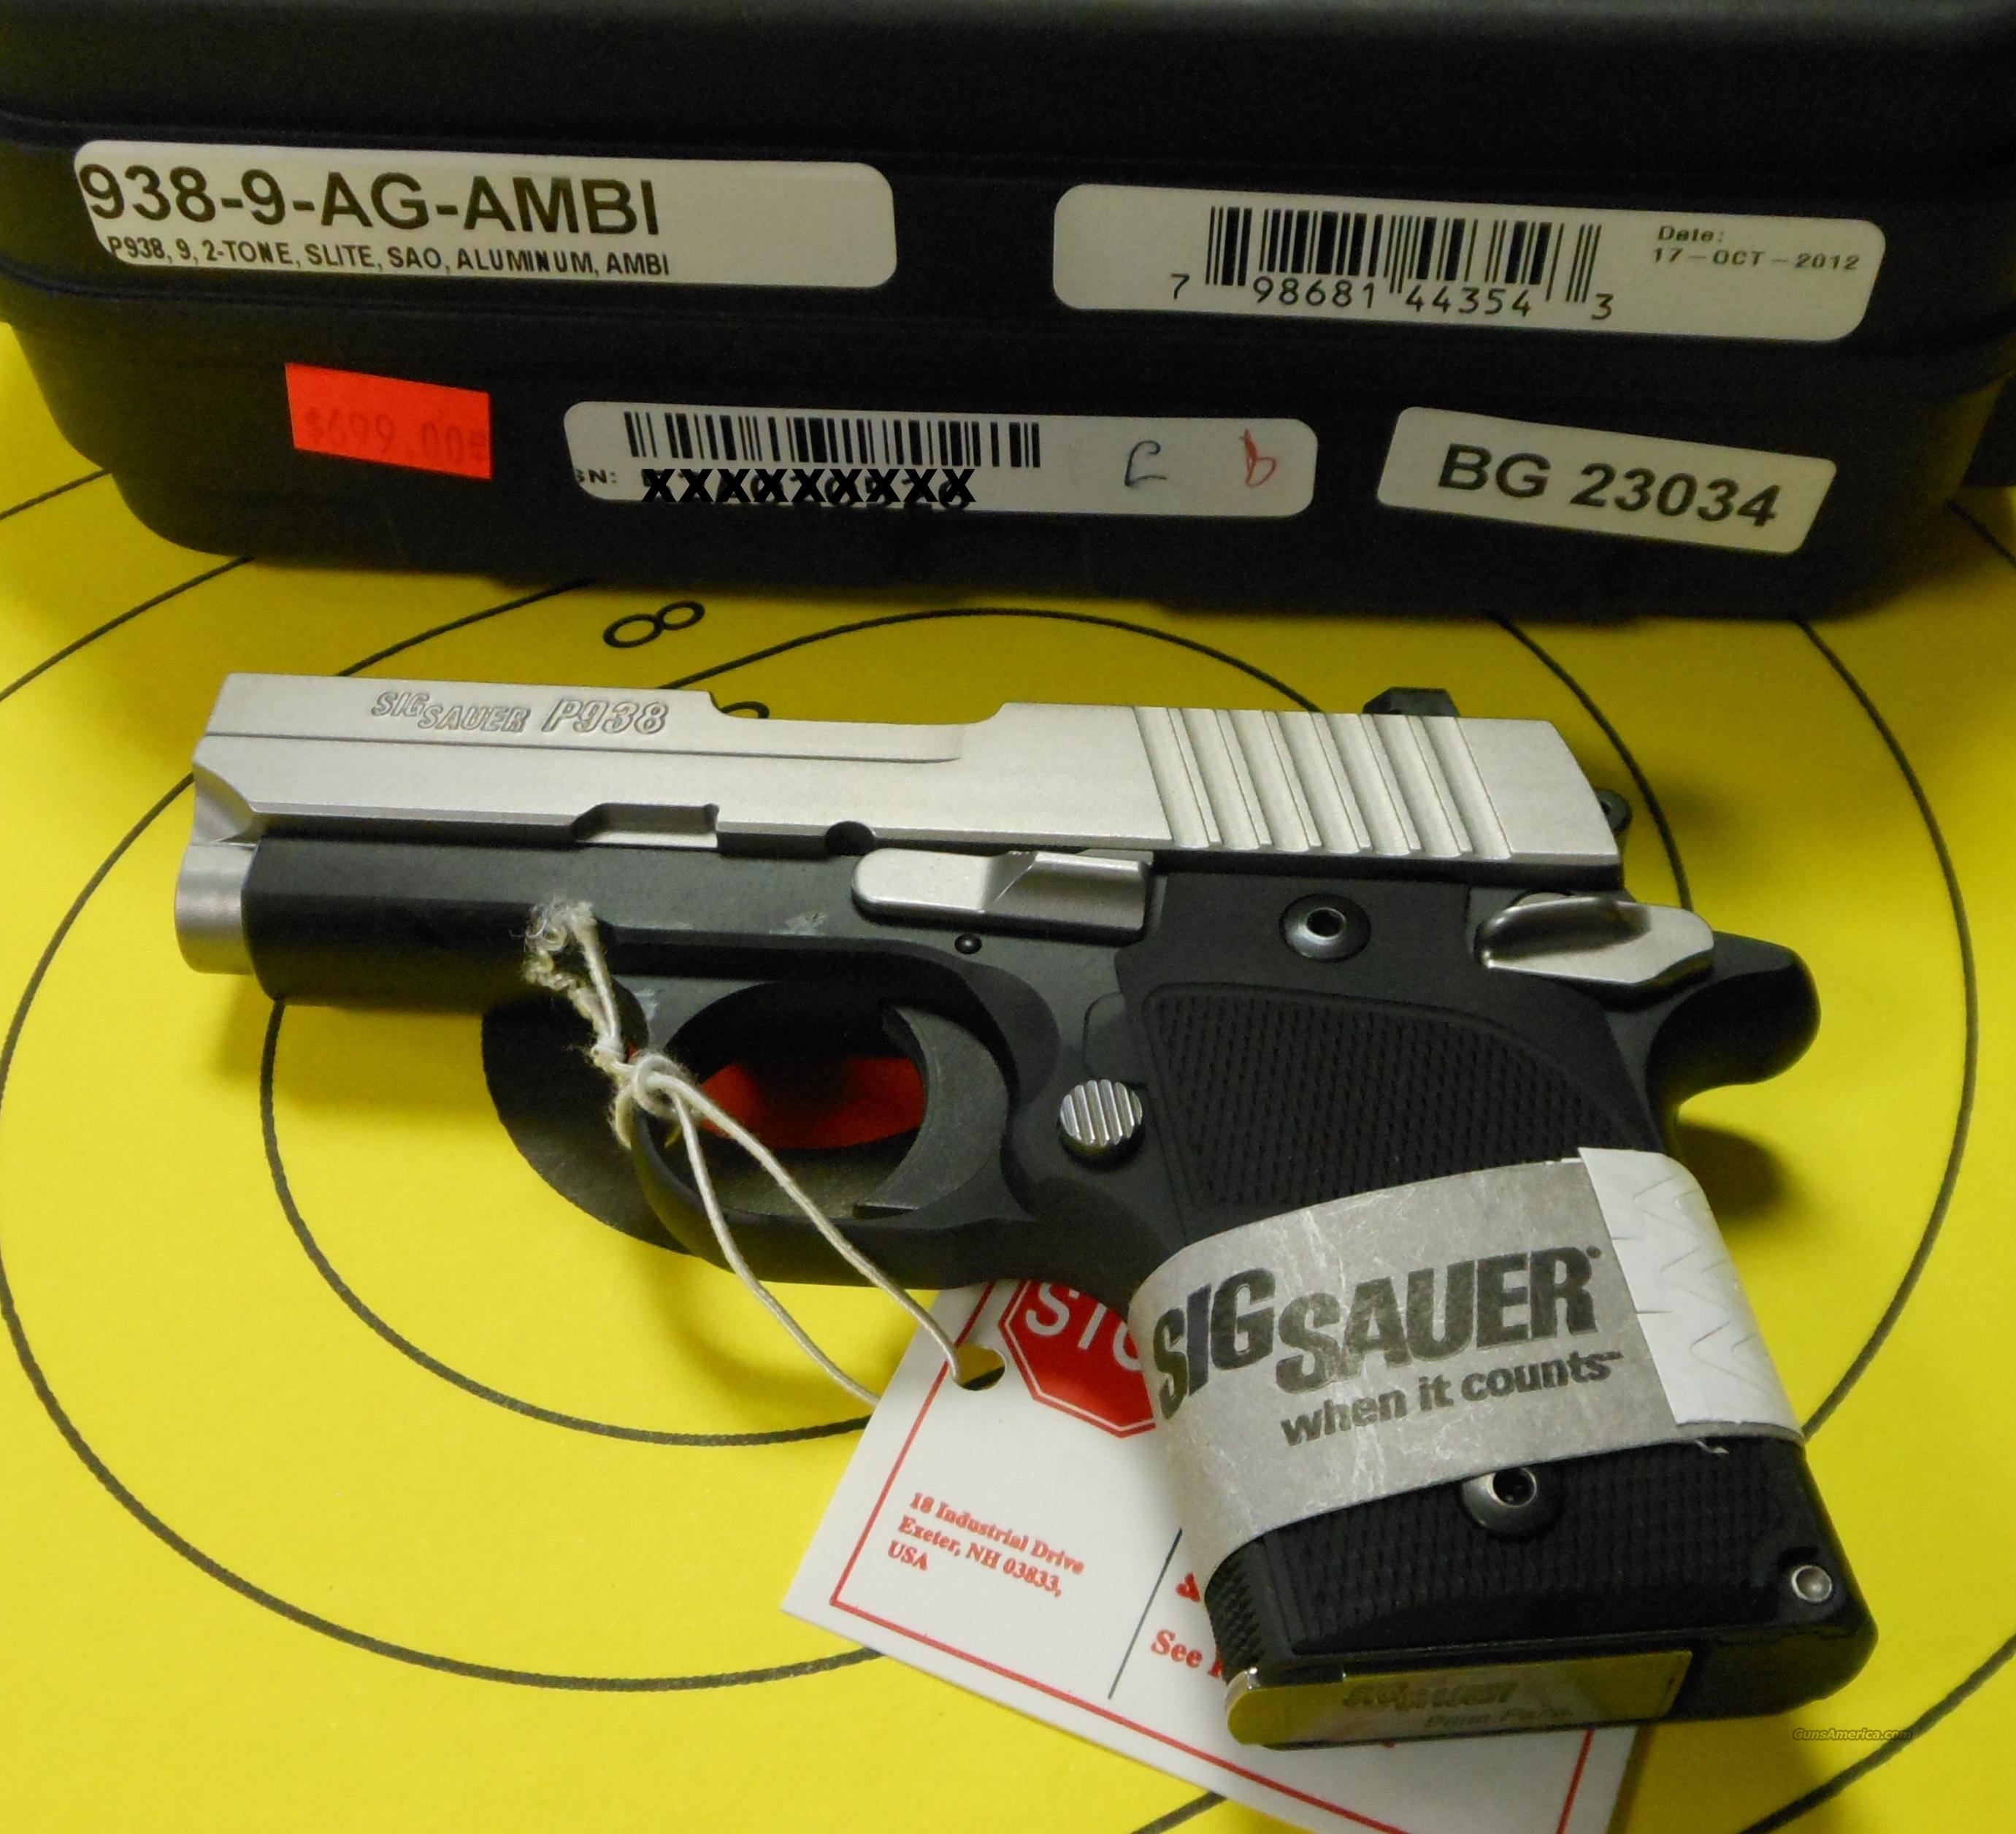 SIG SAUER P938 9MM SAO PISTOL (938-9-AG-AMBI)  Guns > Pistols > Sig - Sauer/Sigarms Pistols > Other